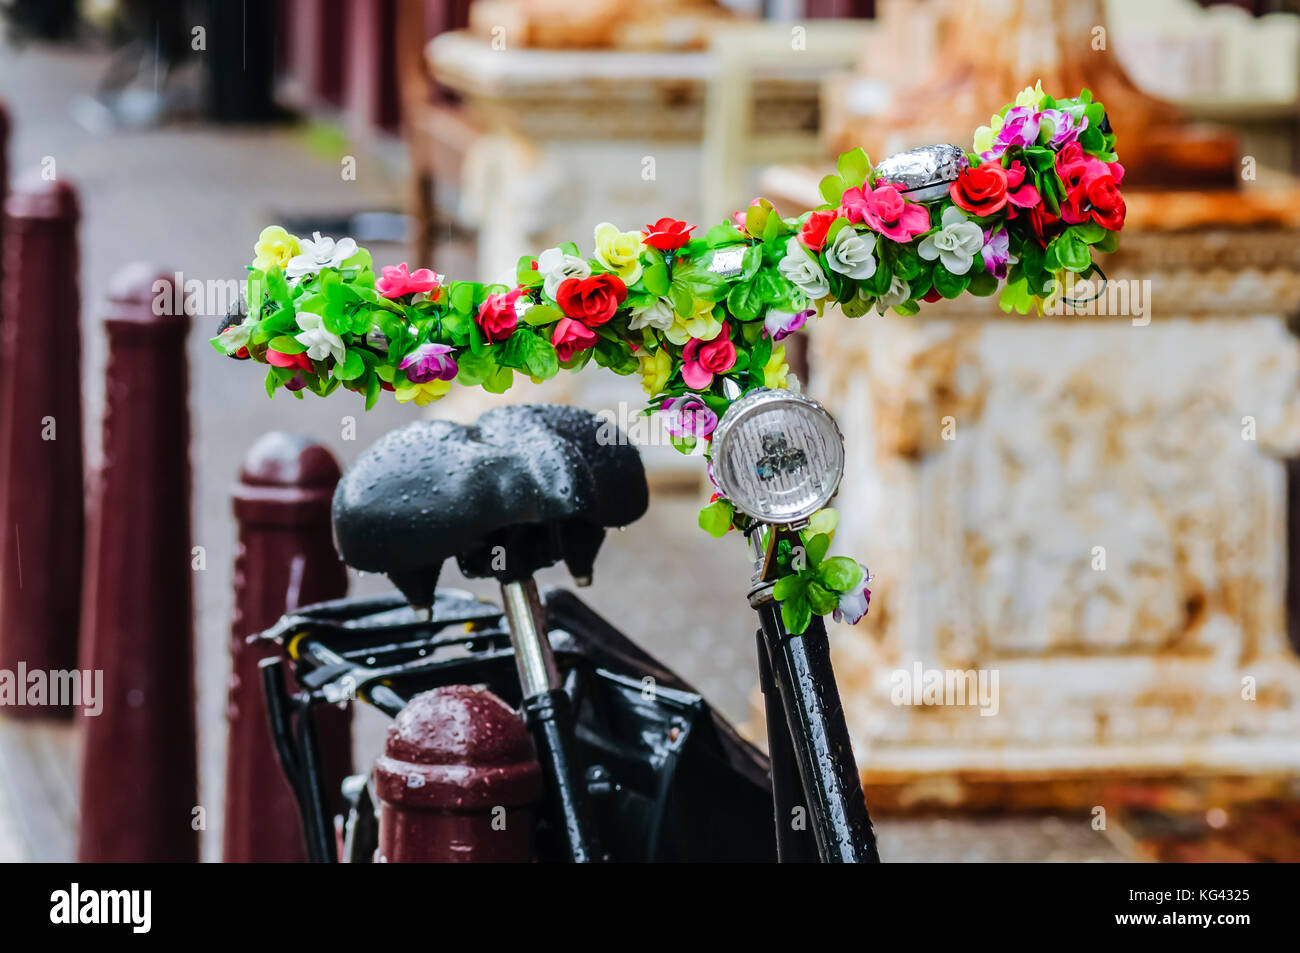 Dutch bicycle with its handlebars decorated with artificial flowers - Stock Image